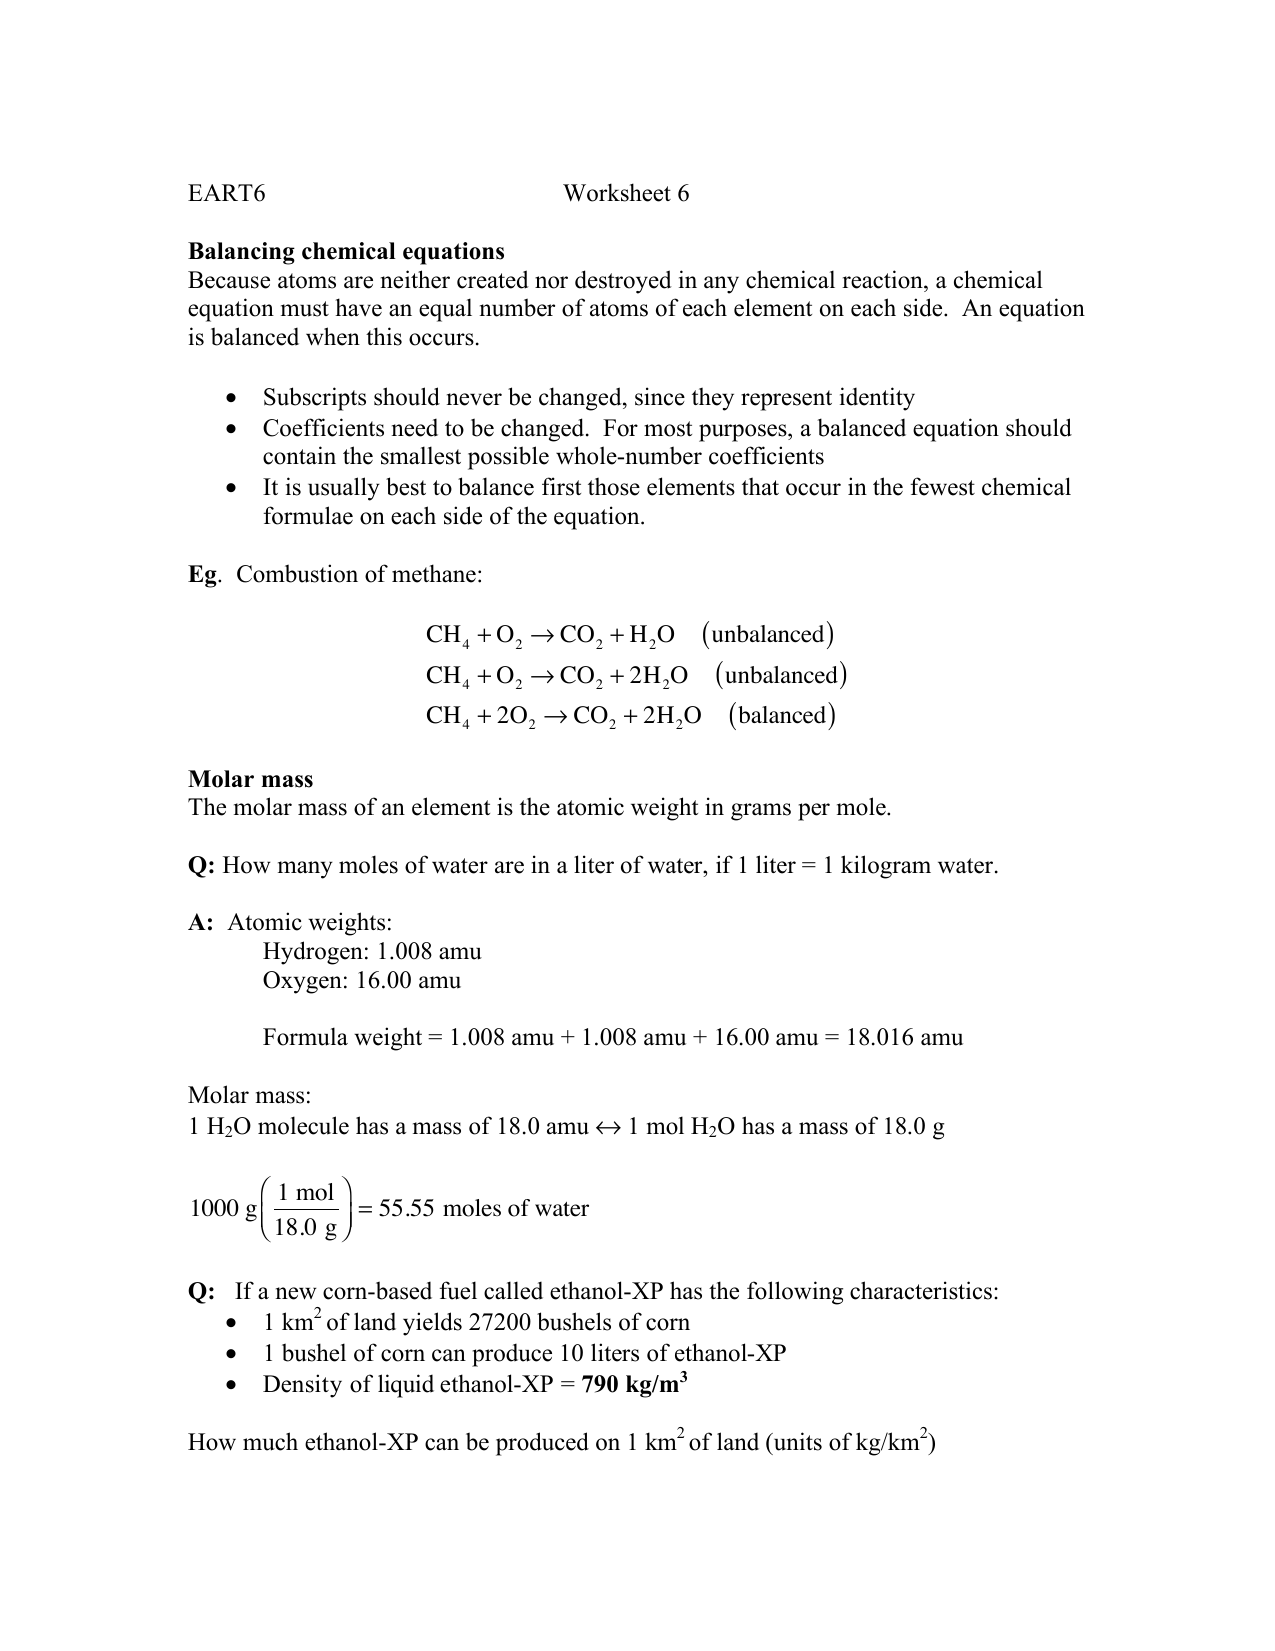 Worksheets 1000 Unbalanced Chemical Equation eart6 worksheet 6 balancing chemical equations because atoms